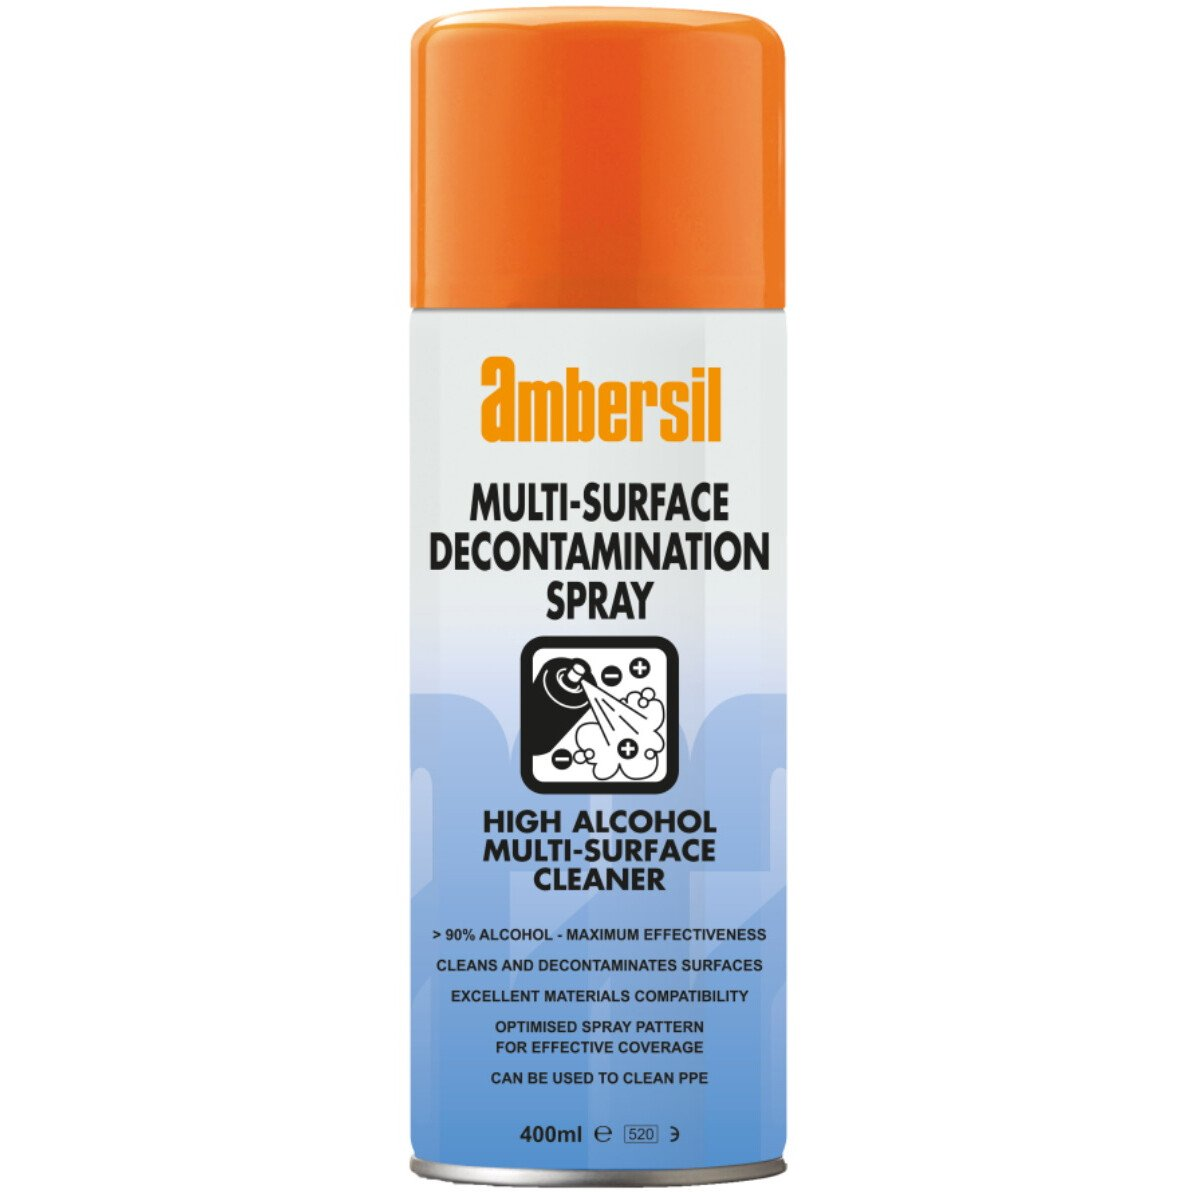 Ambersil (>90% Alcohol) Decontamination Spray for Multi-Surfaces 400ml 33339-AA